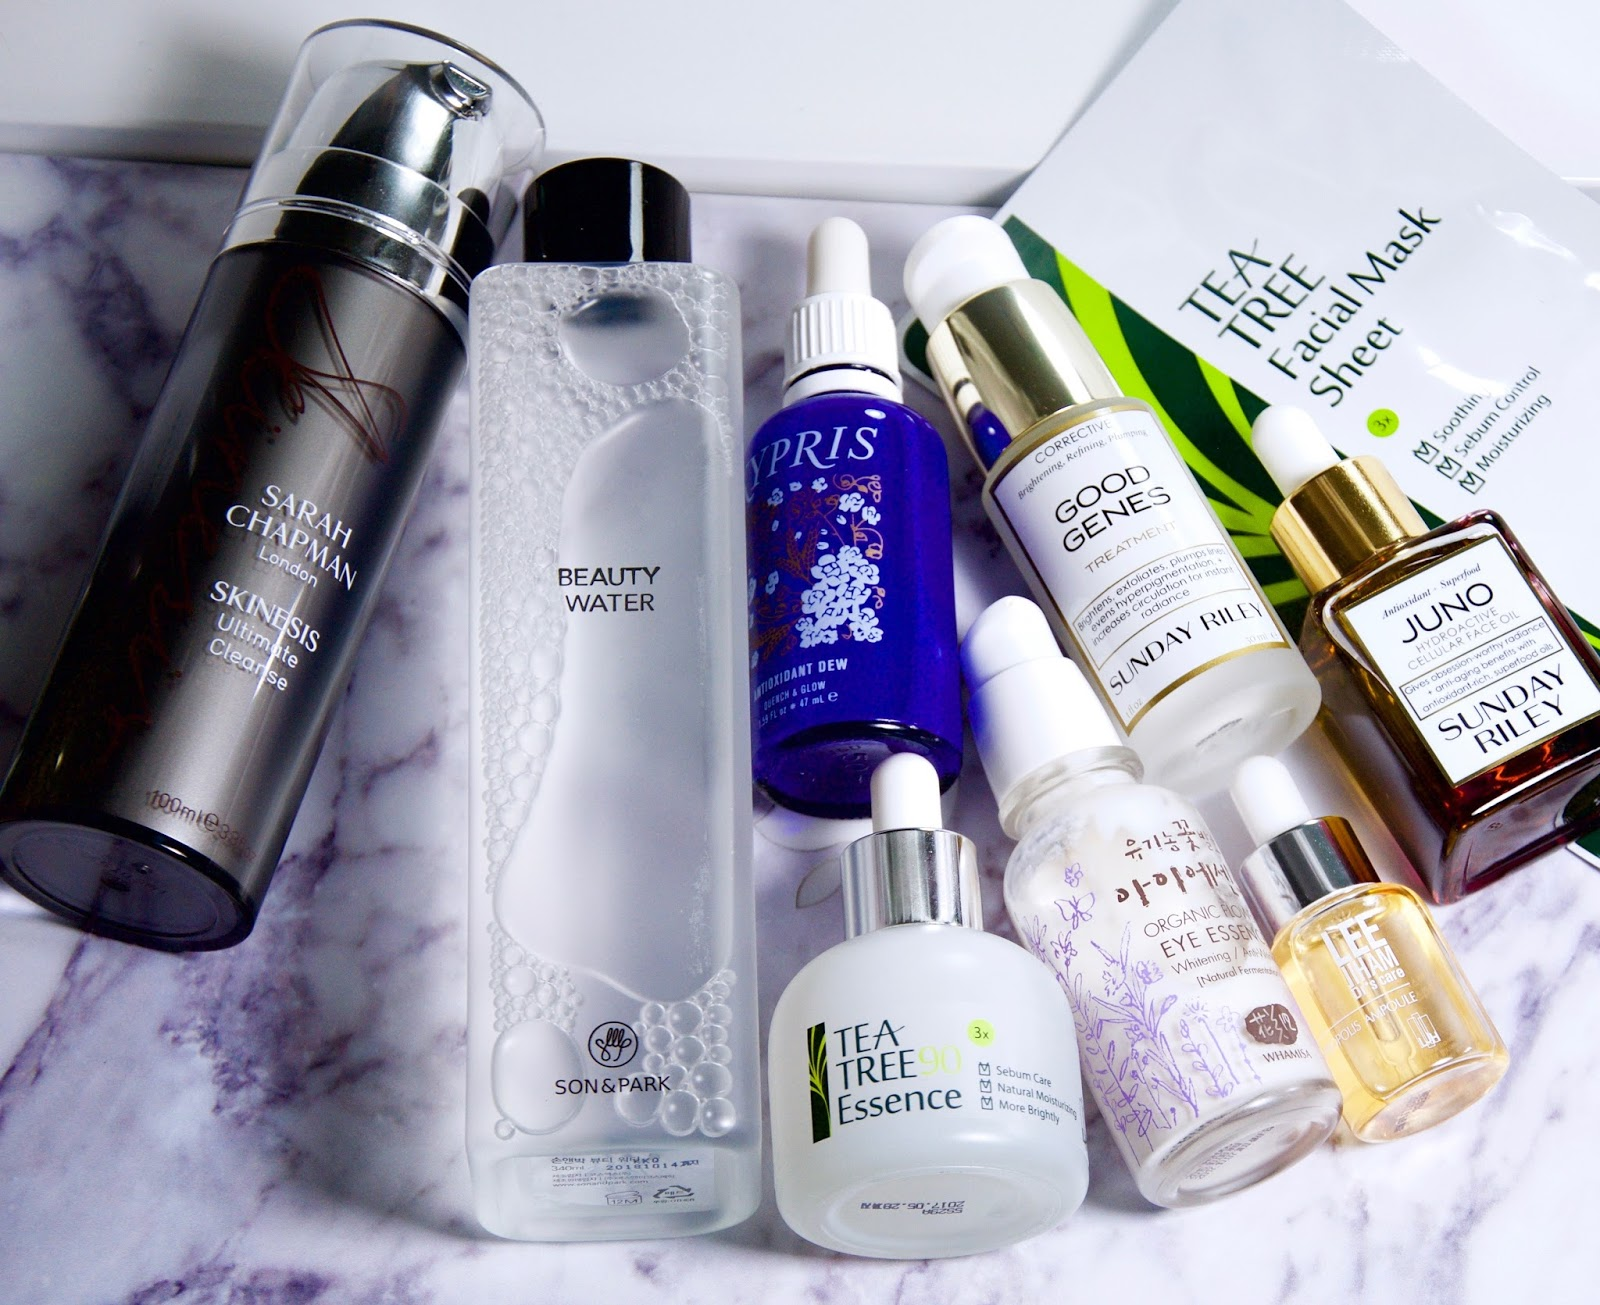 THE REVIEW : SON & PARK BEAUTY WATER , A MULTI-TASKING GODDESS!